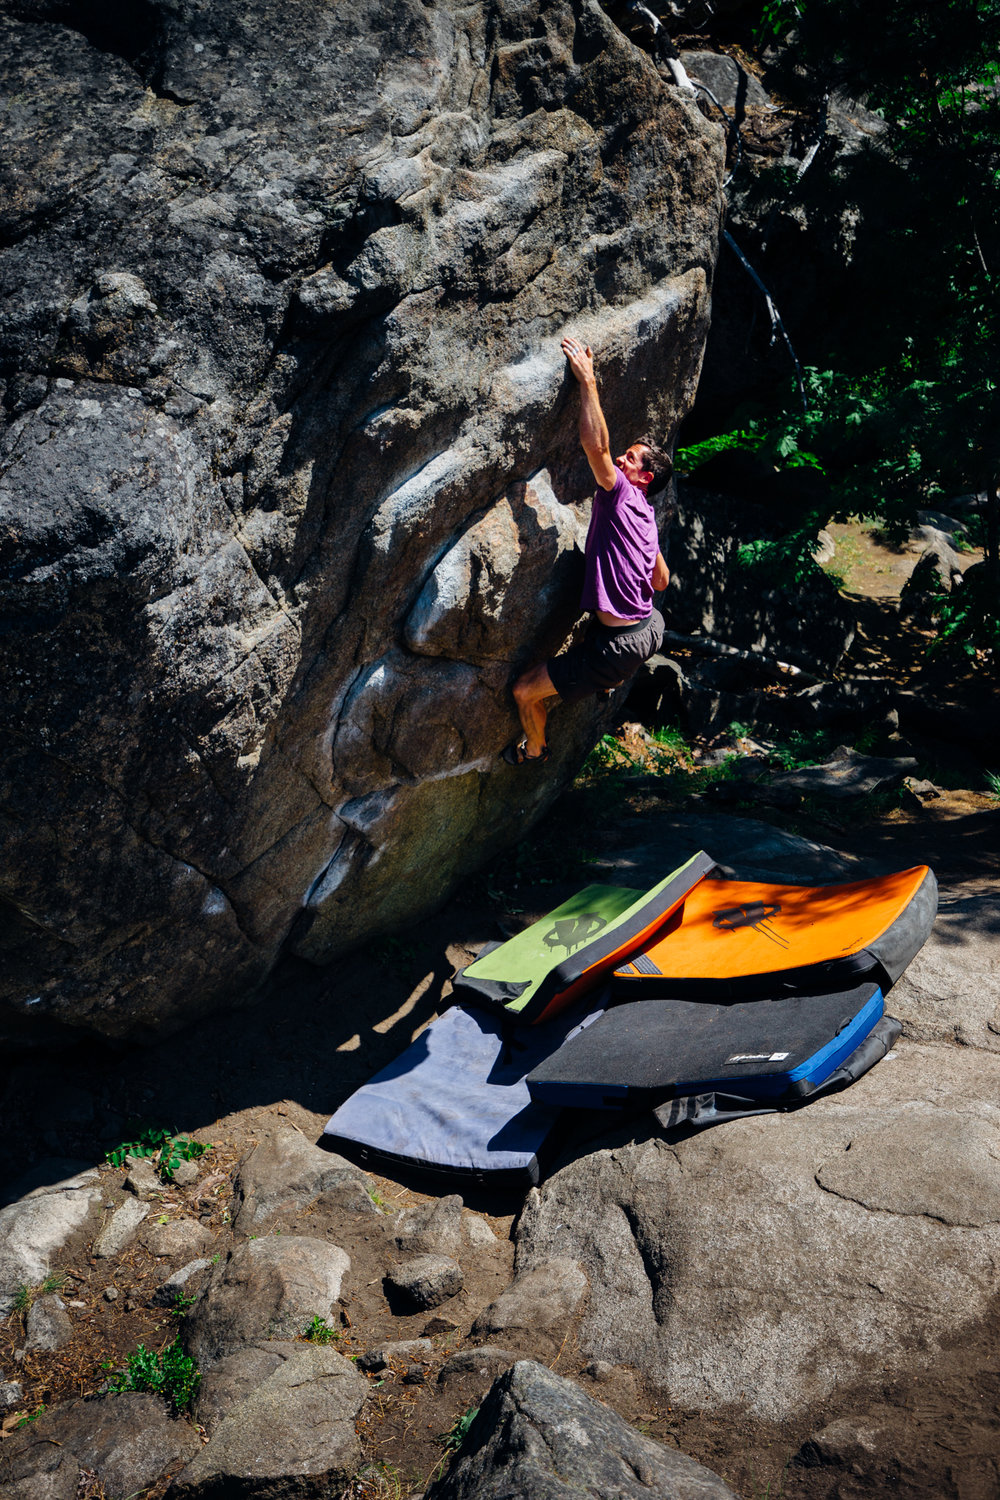 6. This is a shot of a boulderer on Funny and Cheap (V4) at Forestland Boulders, Leavenworth, WA.